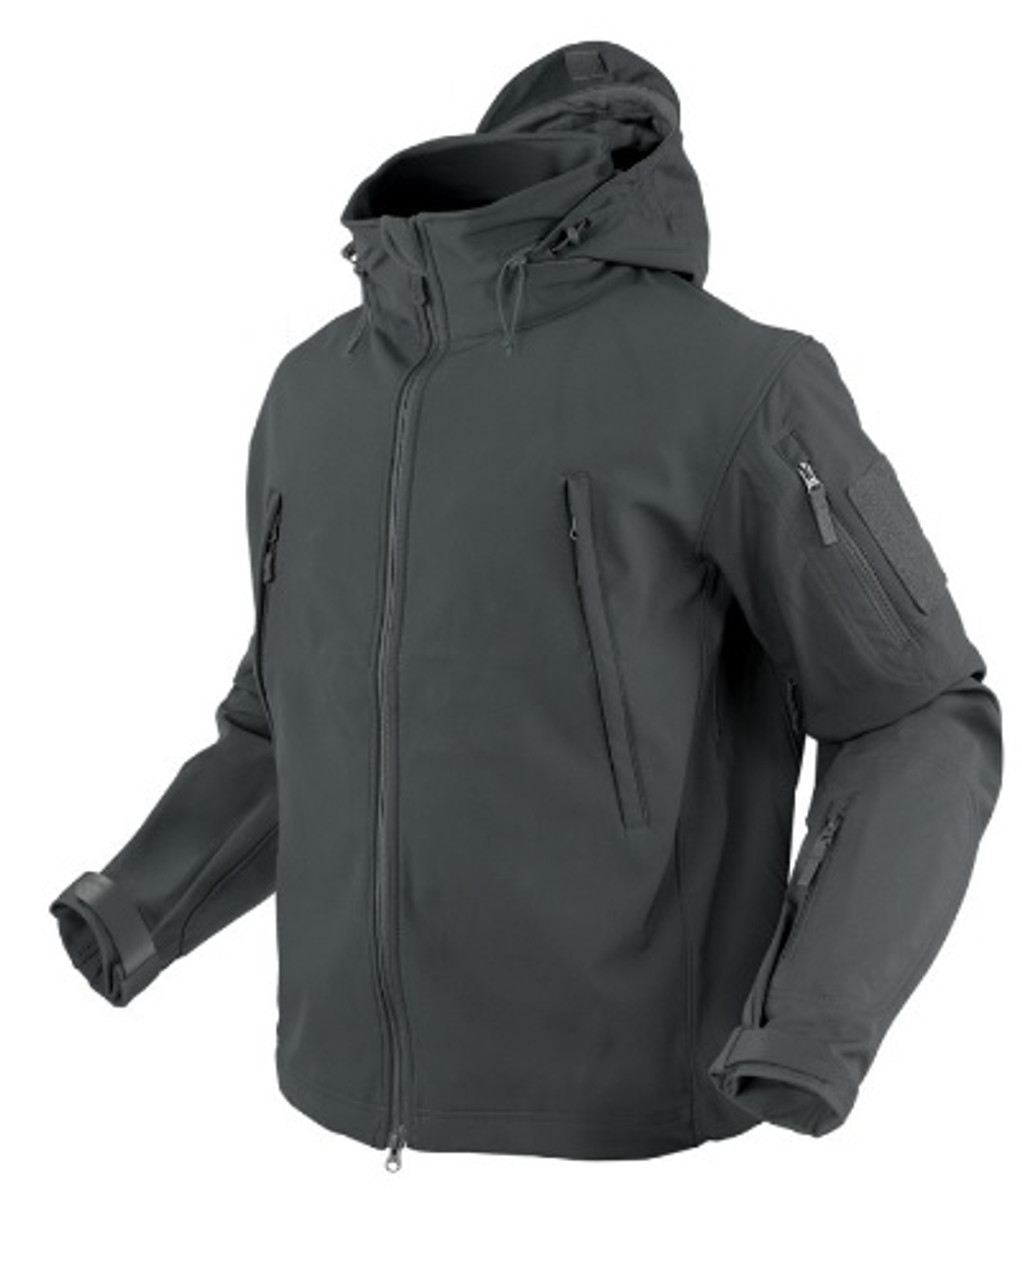 Condor Summit Softshell Jacket, 3 Colors Available